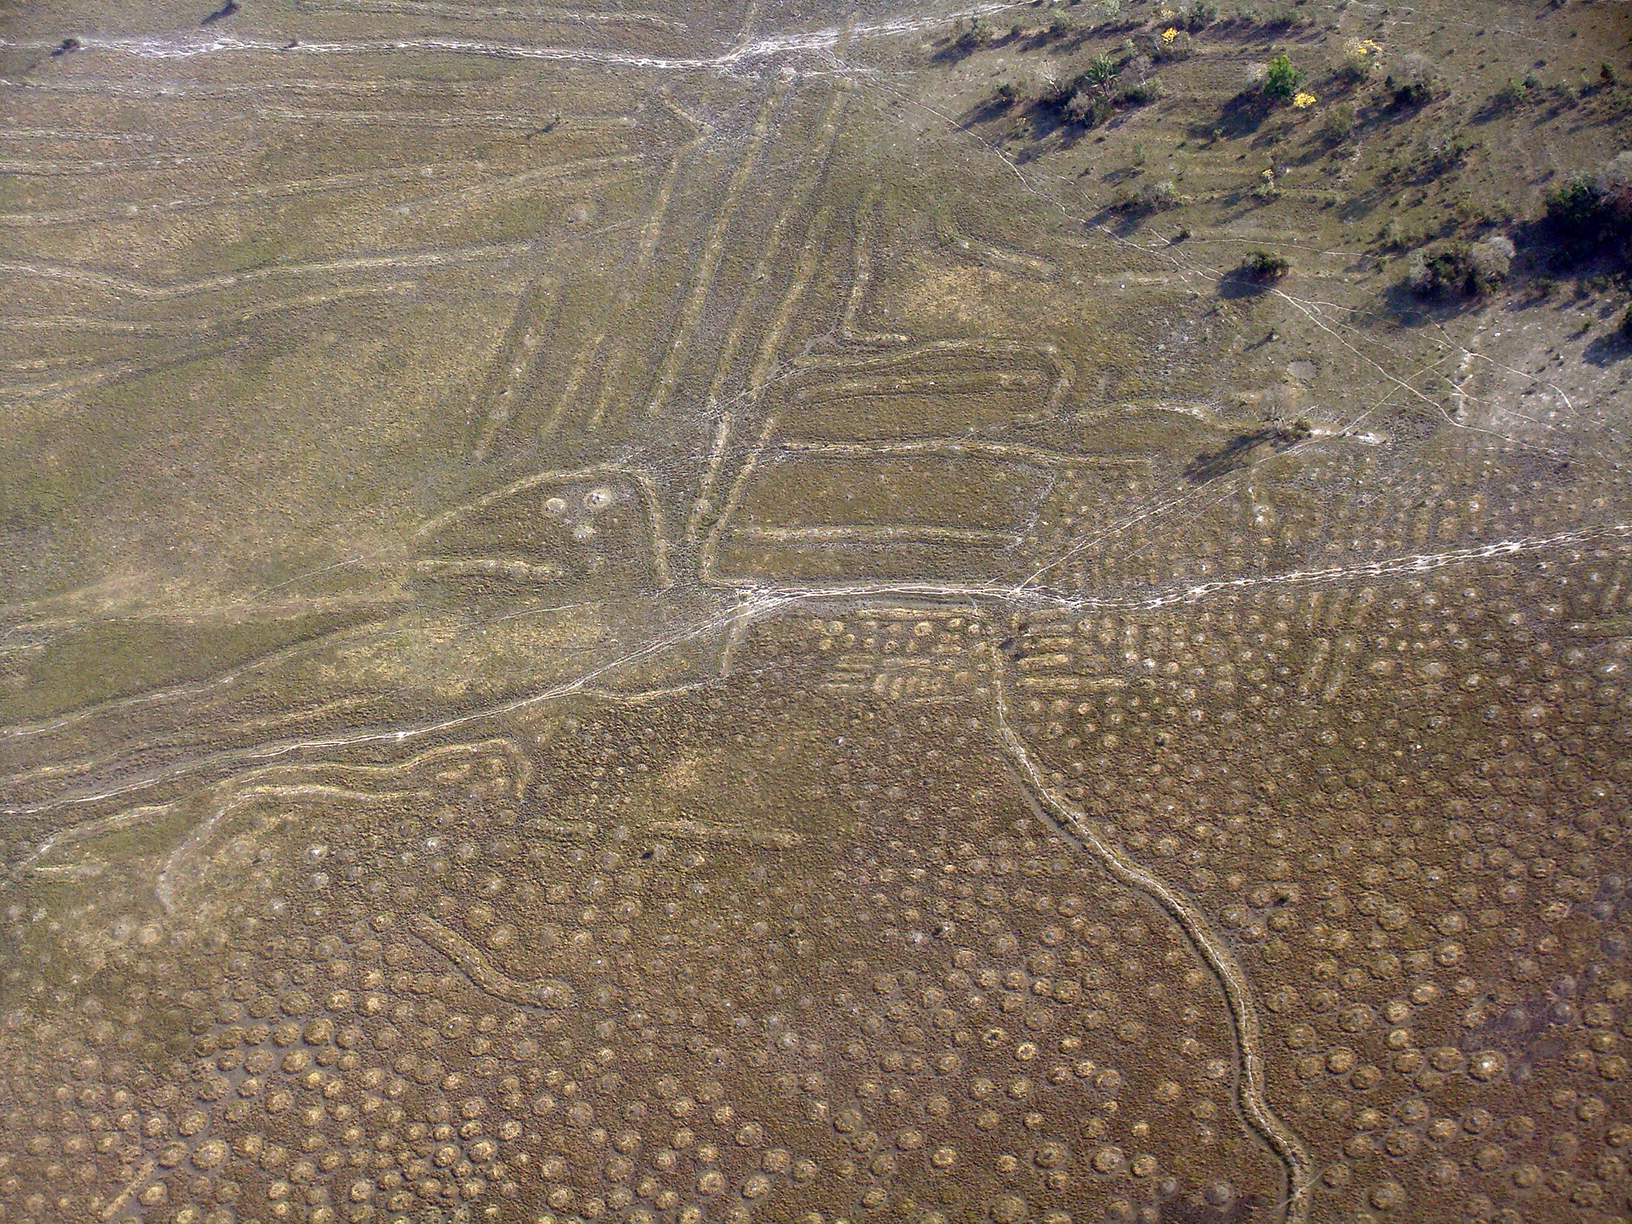 Aerial image of raised fields in Bolivia